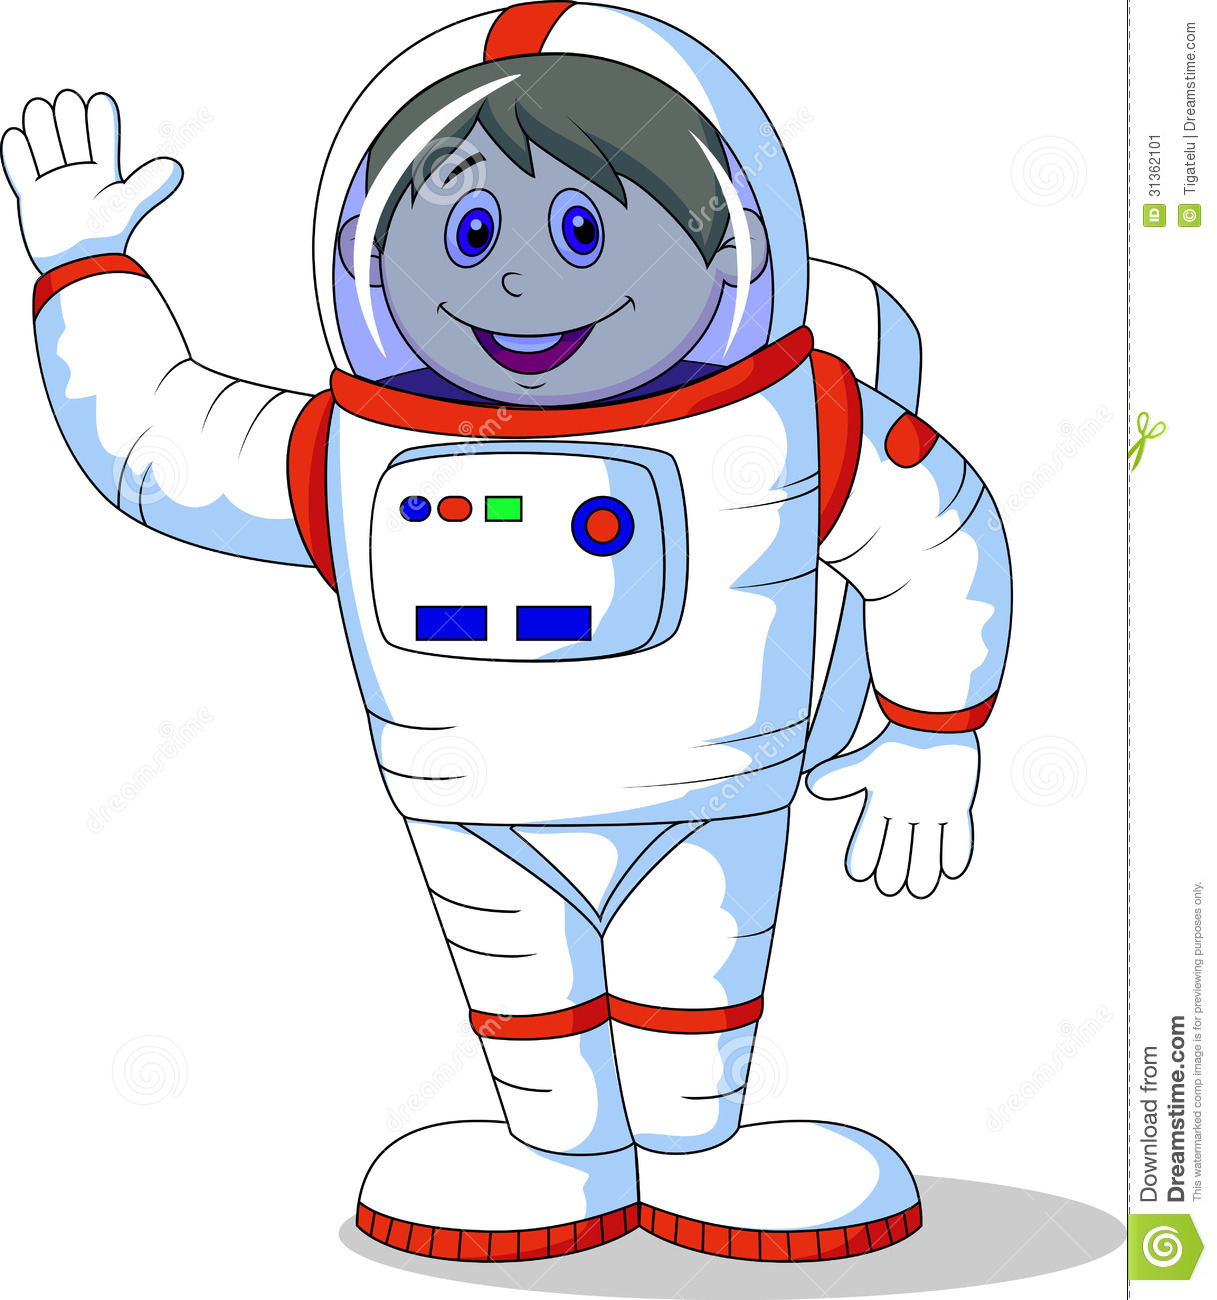 Kid Astronaut Clipart Cute Astronaut Cartoon